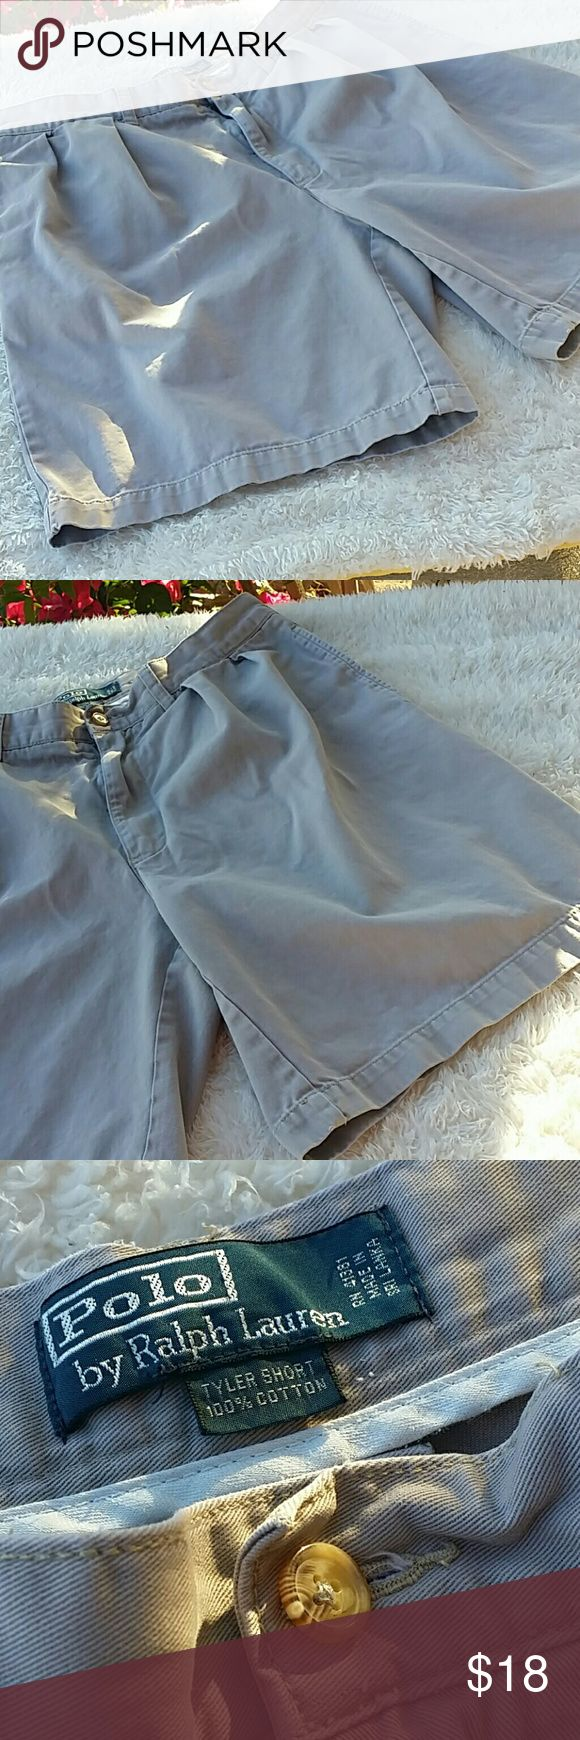 Polo Ralph Lauren Tyler Chino Shorts Pre-owned : gently used condition. No rips, tears, or stains. Feel free to ask questions or request different pictures. All items are from a smoke free but pet friendly home.  Reduce. Reuse. Recycle. Polo by Ralph Lauren Shorts